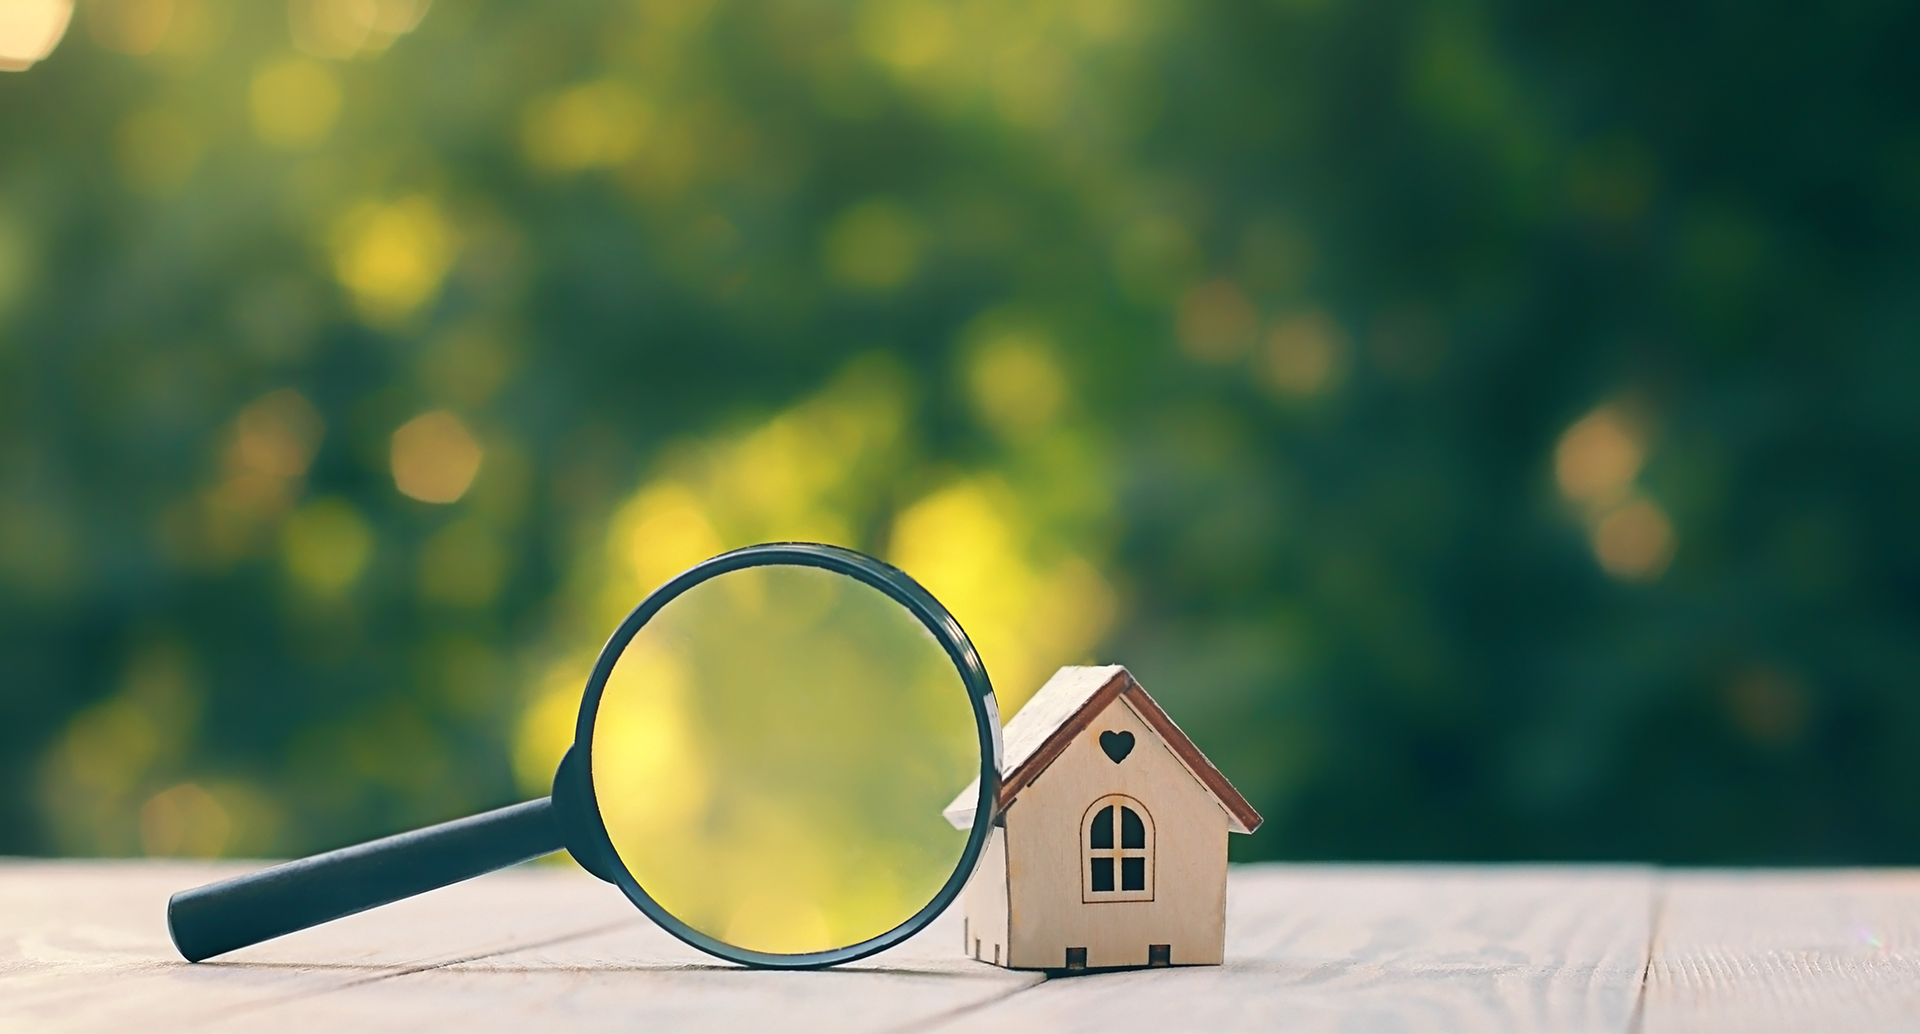 Small house on magnifying glass